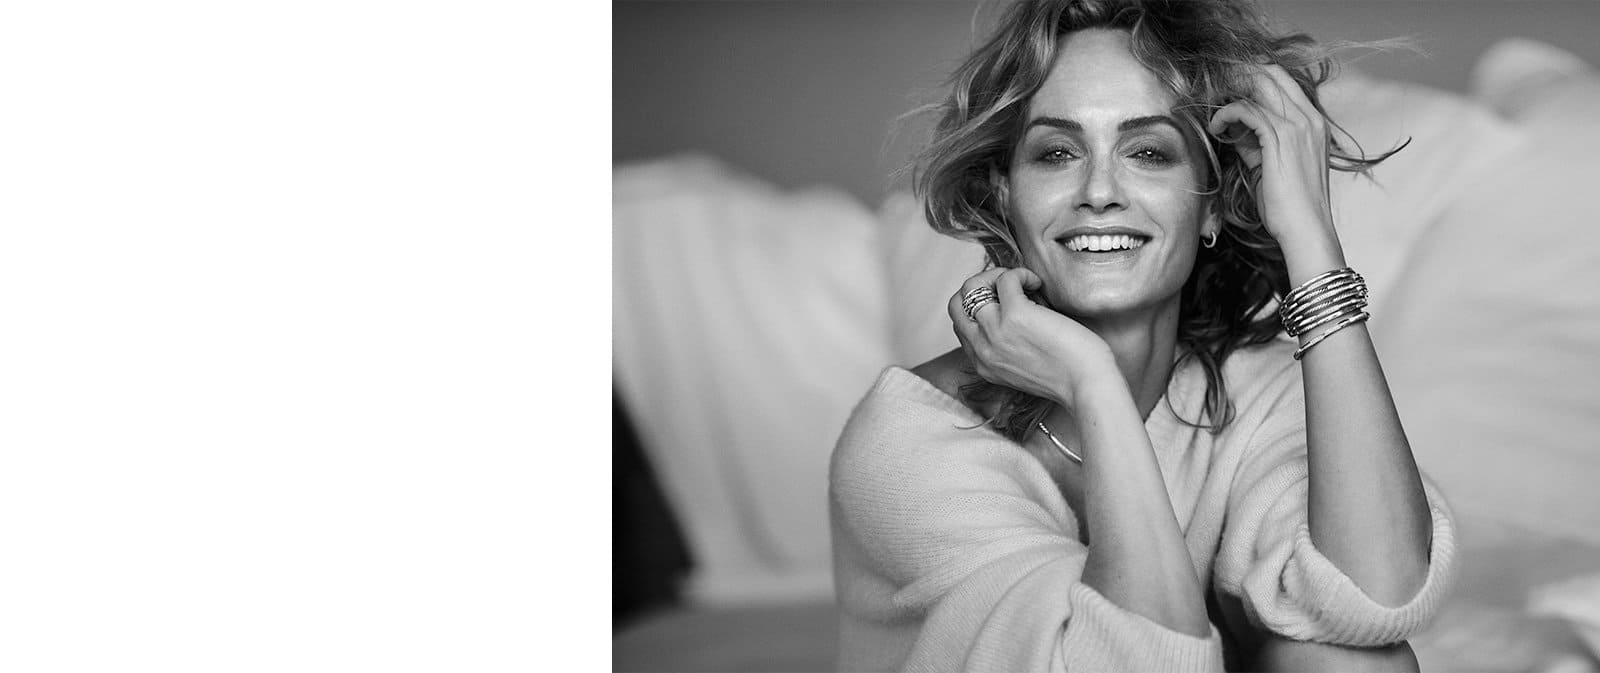 Model Amber Valletta wears multiple pieces of Tides jewelry in sterling silver with pavé white diamonds.